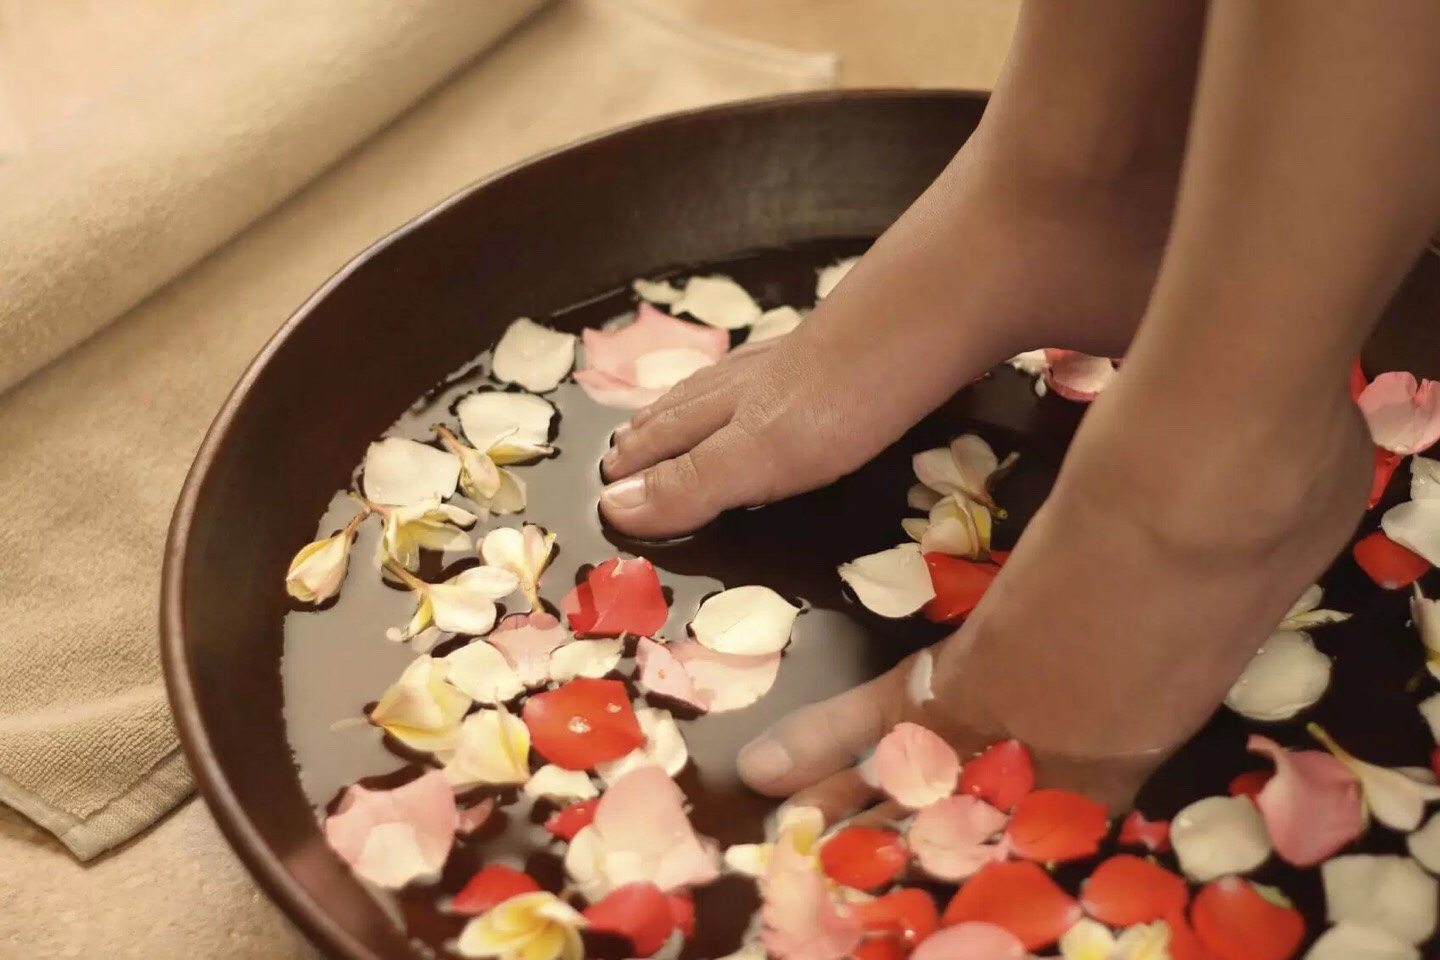 Giving yourself a pedicure... Choosing a ravishing color is beyond! You can add rose pedals if you want the spa treatment, but it's not required.